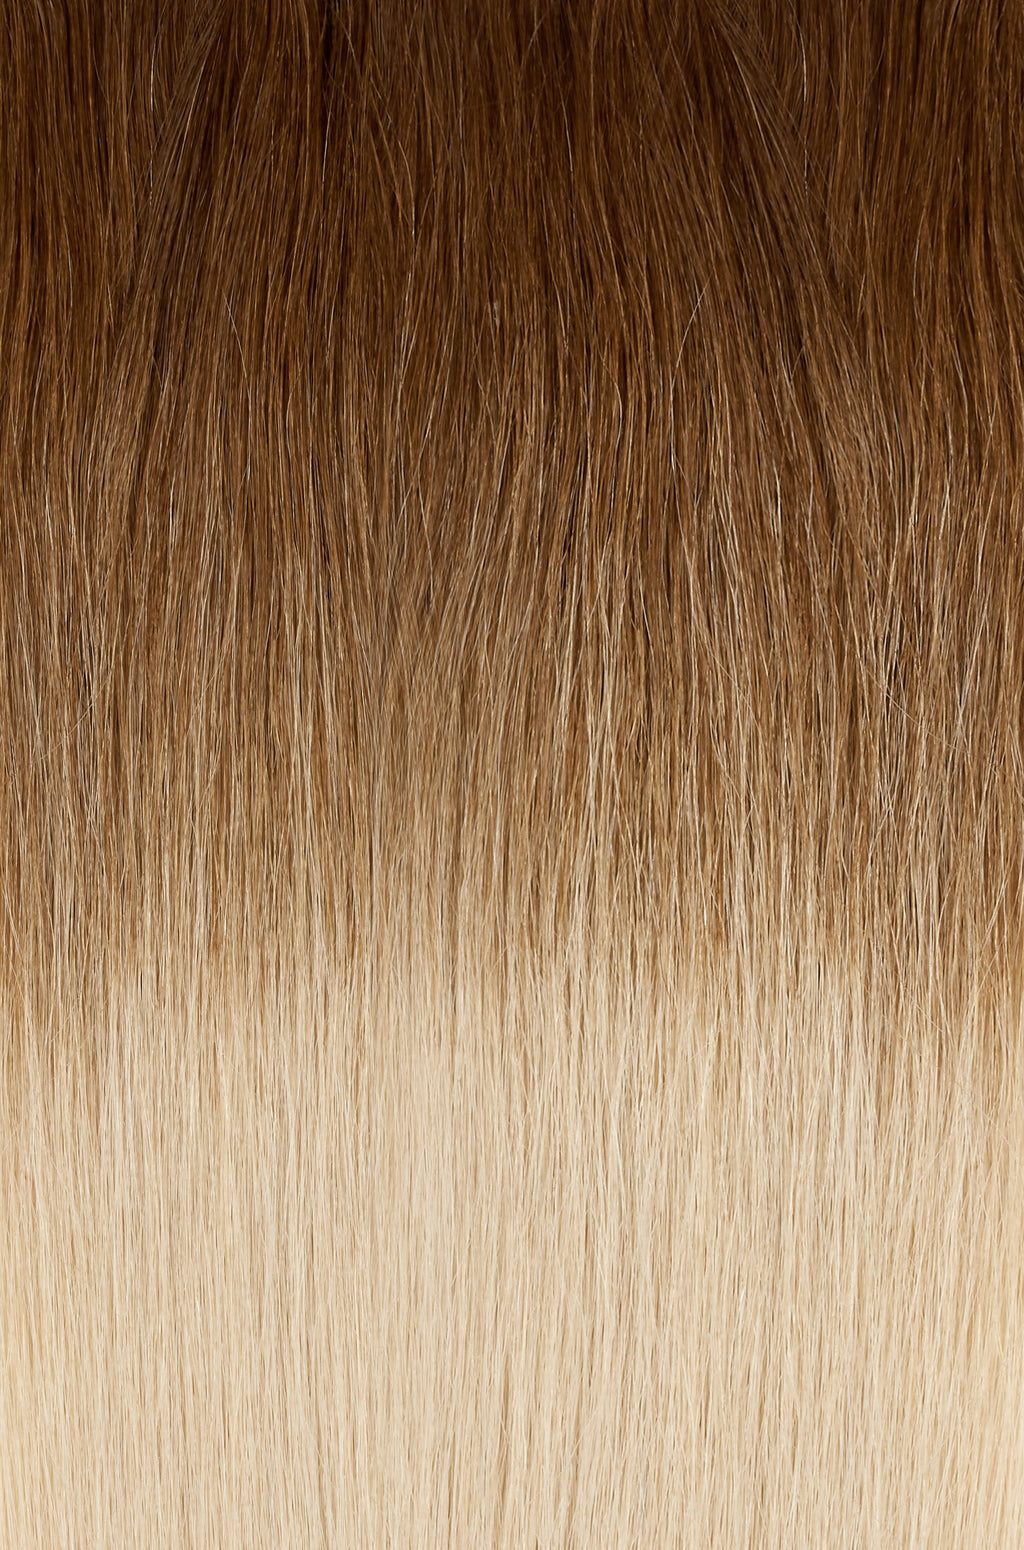 Ombre - Caramel Brown (#4) to Dirty Blonde (#19C) Tape (50g)